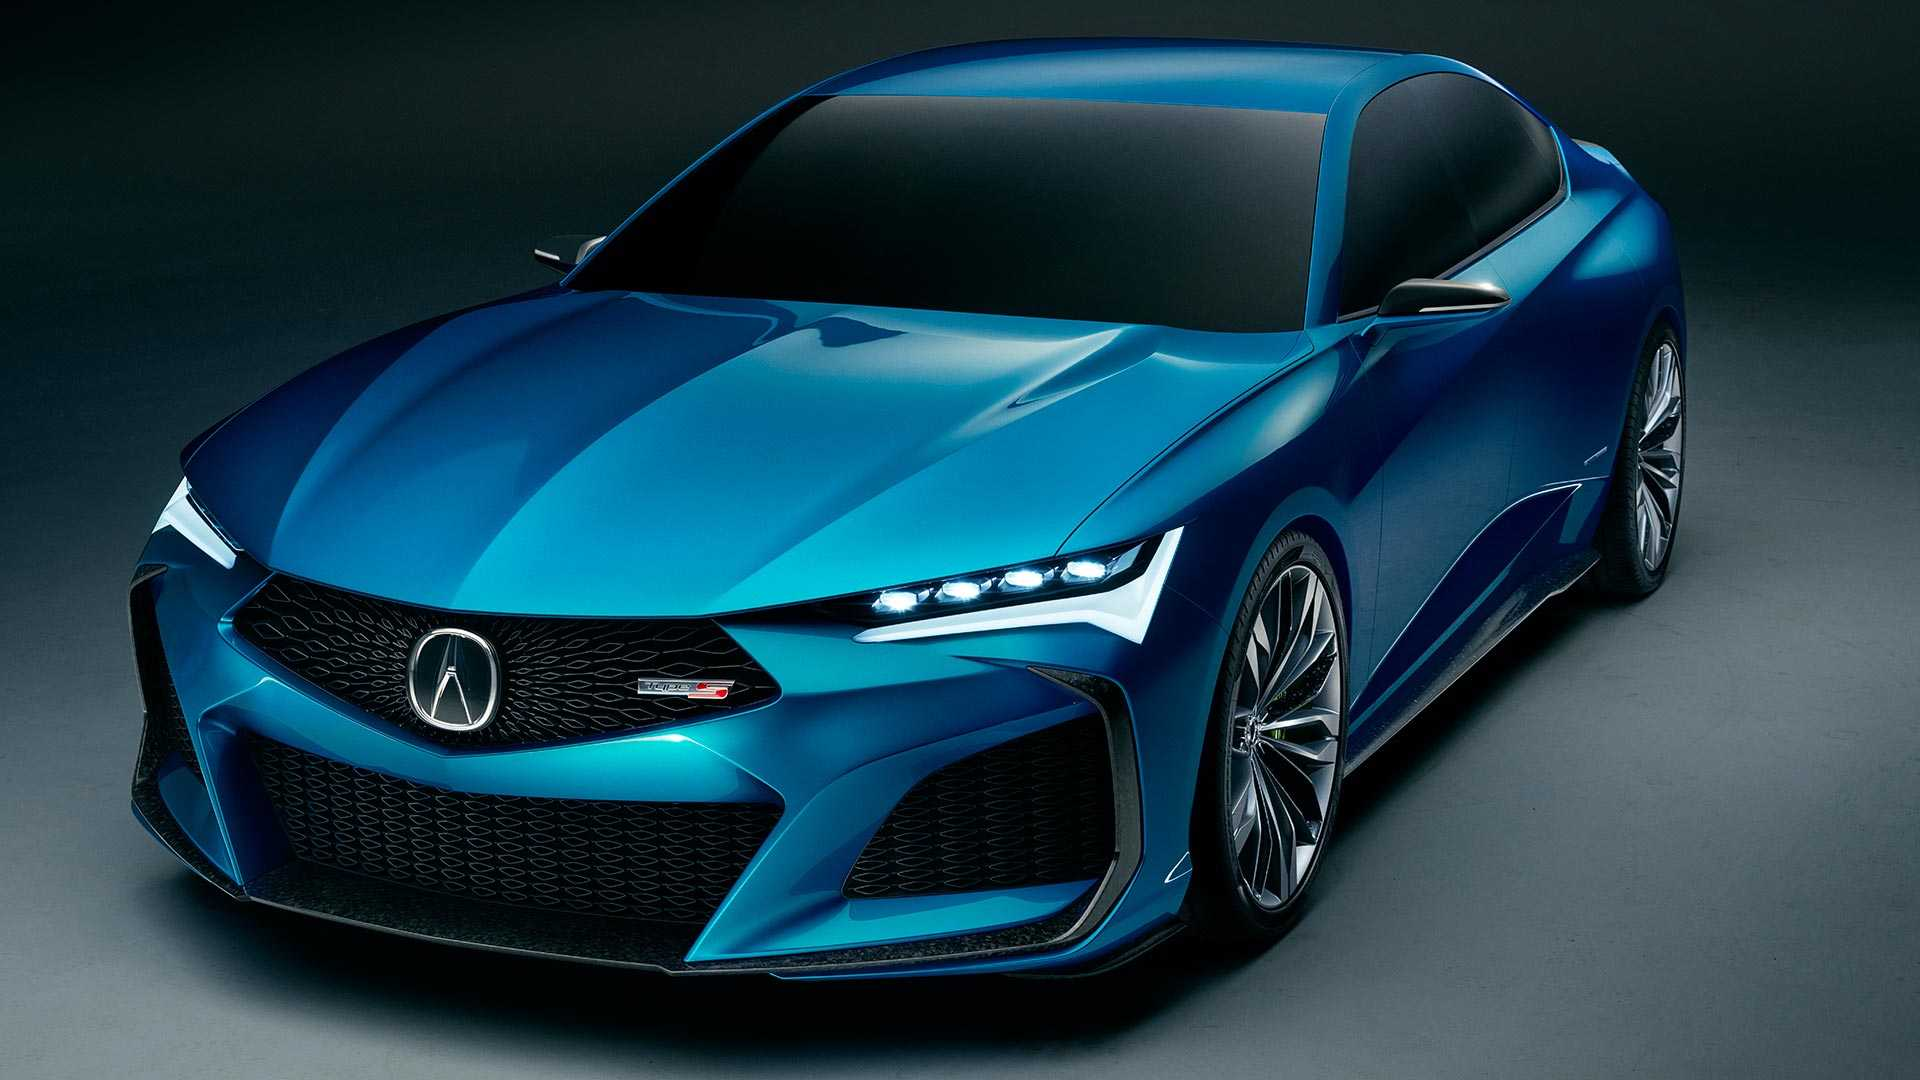 Acura has unveiled the Type S, a concept car that shows a different approach to the carmaker's established design tradition and hints at what future Acura vehicles may look like.